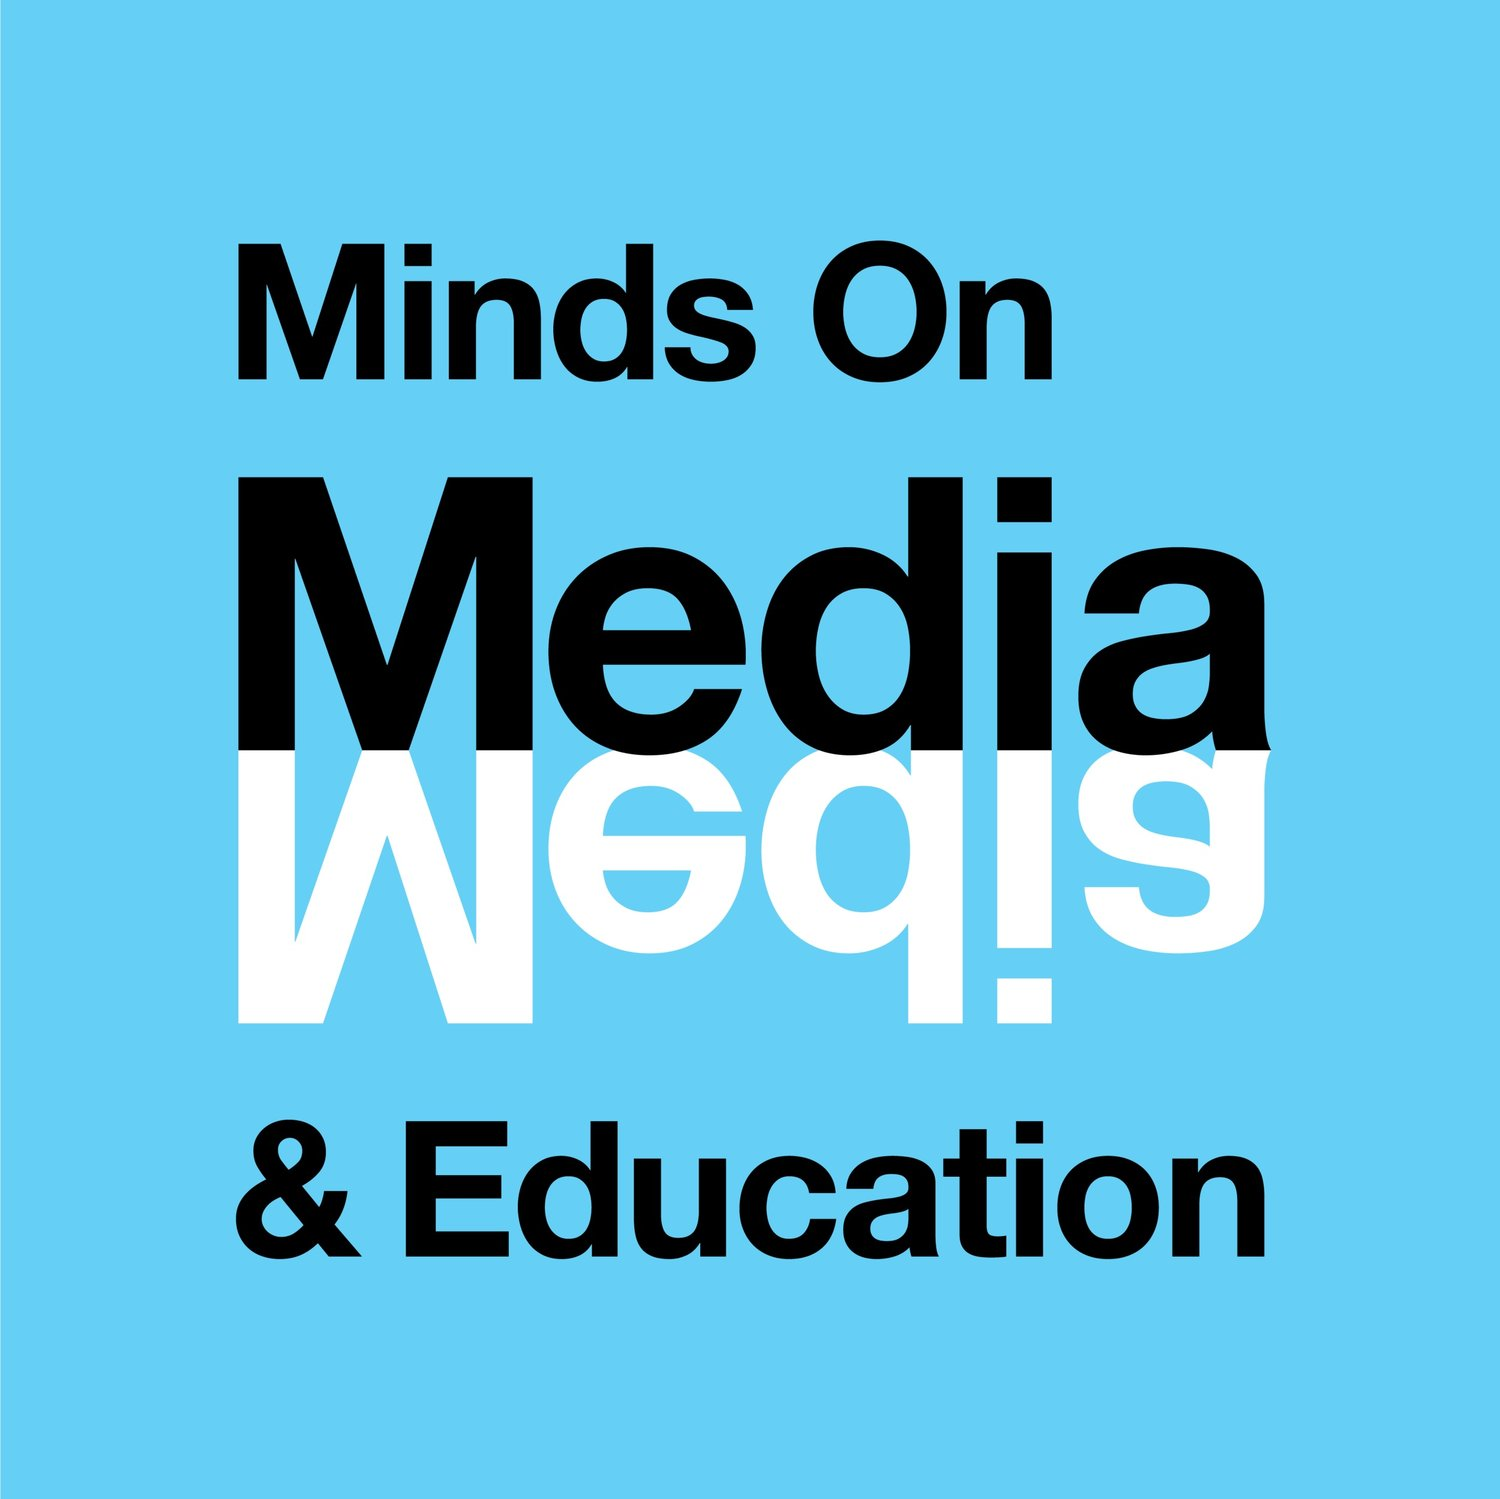 Minds On Media & Education